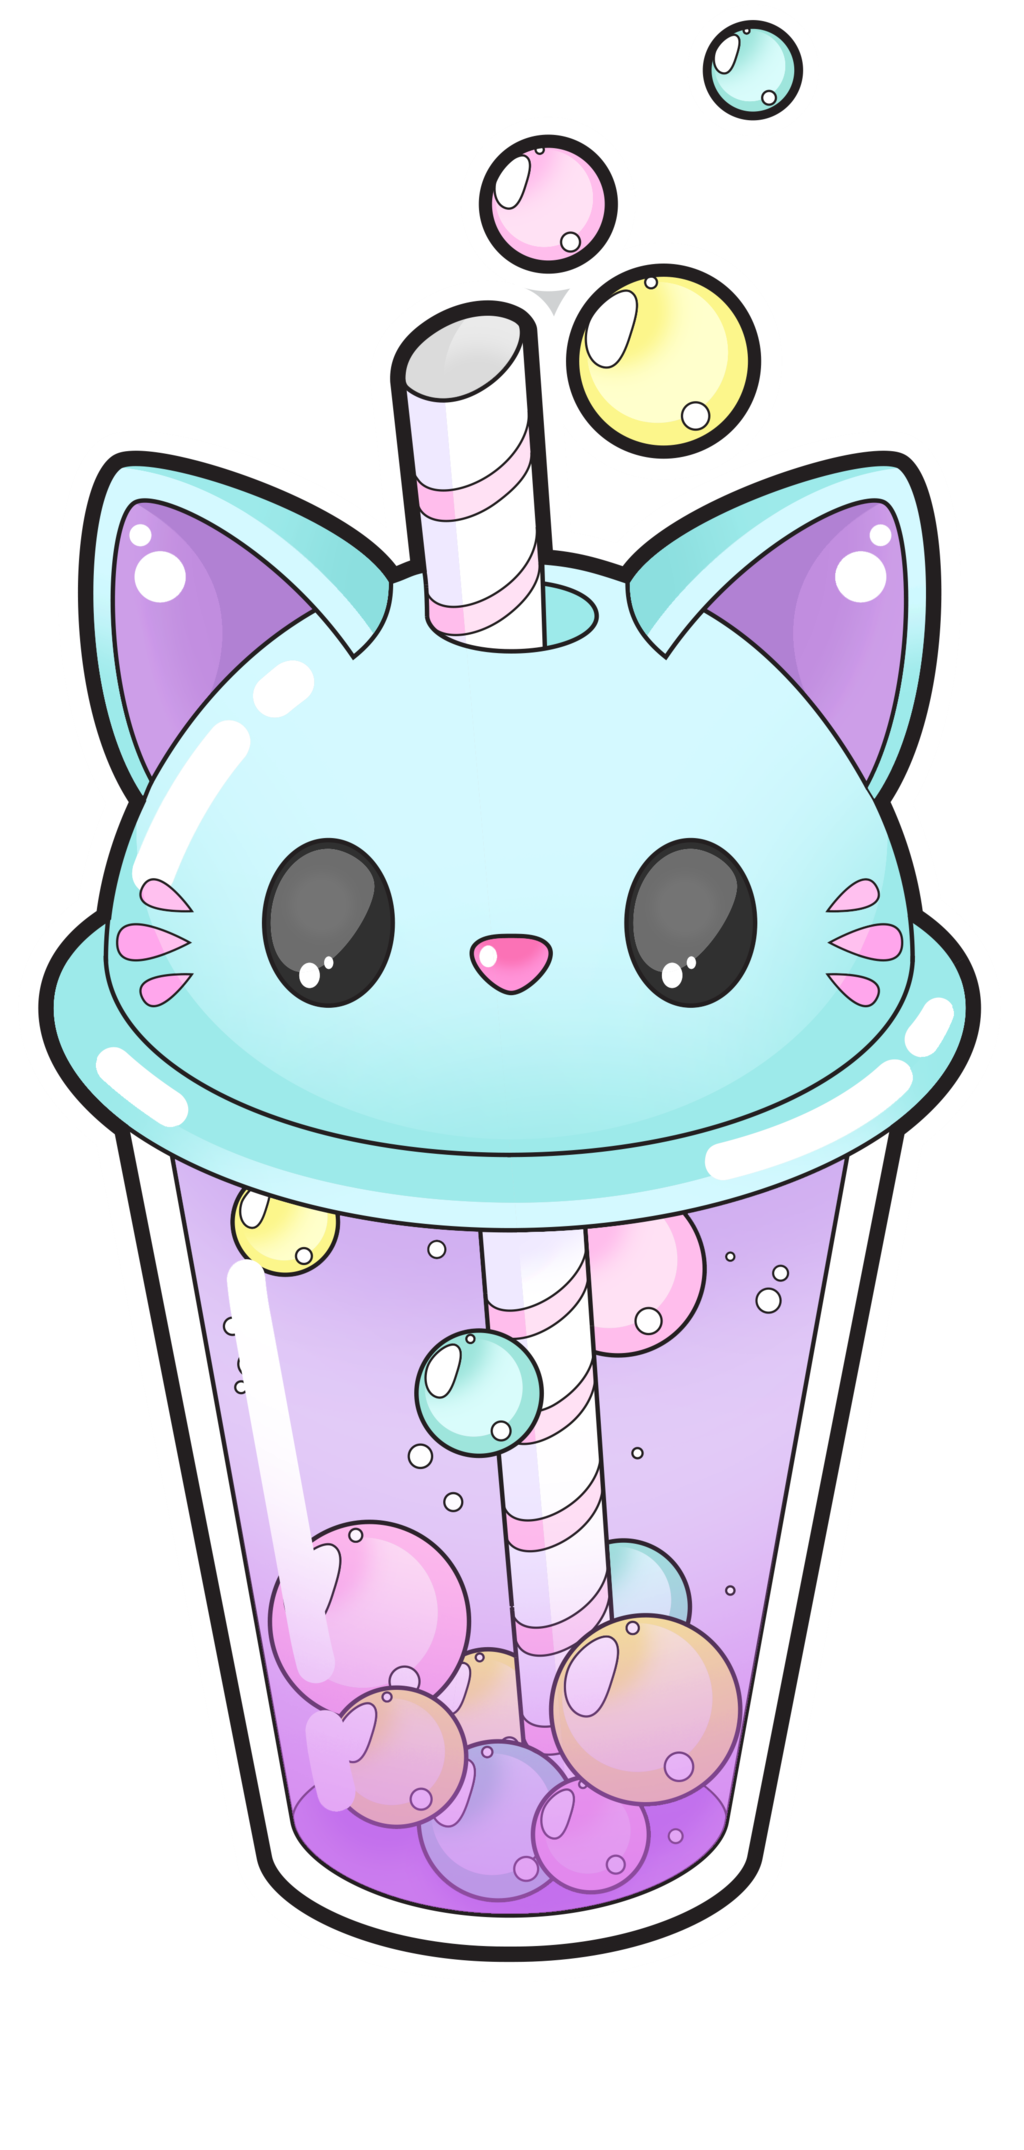 Macaroon drawing wallpaper. Cute cat bubble tea